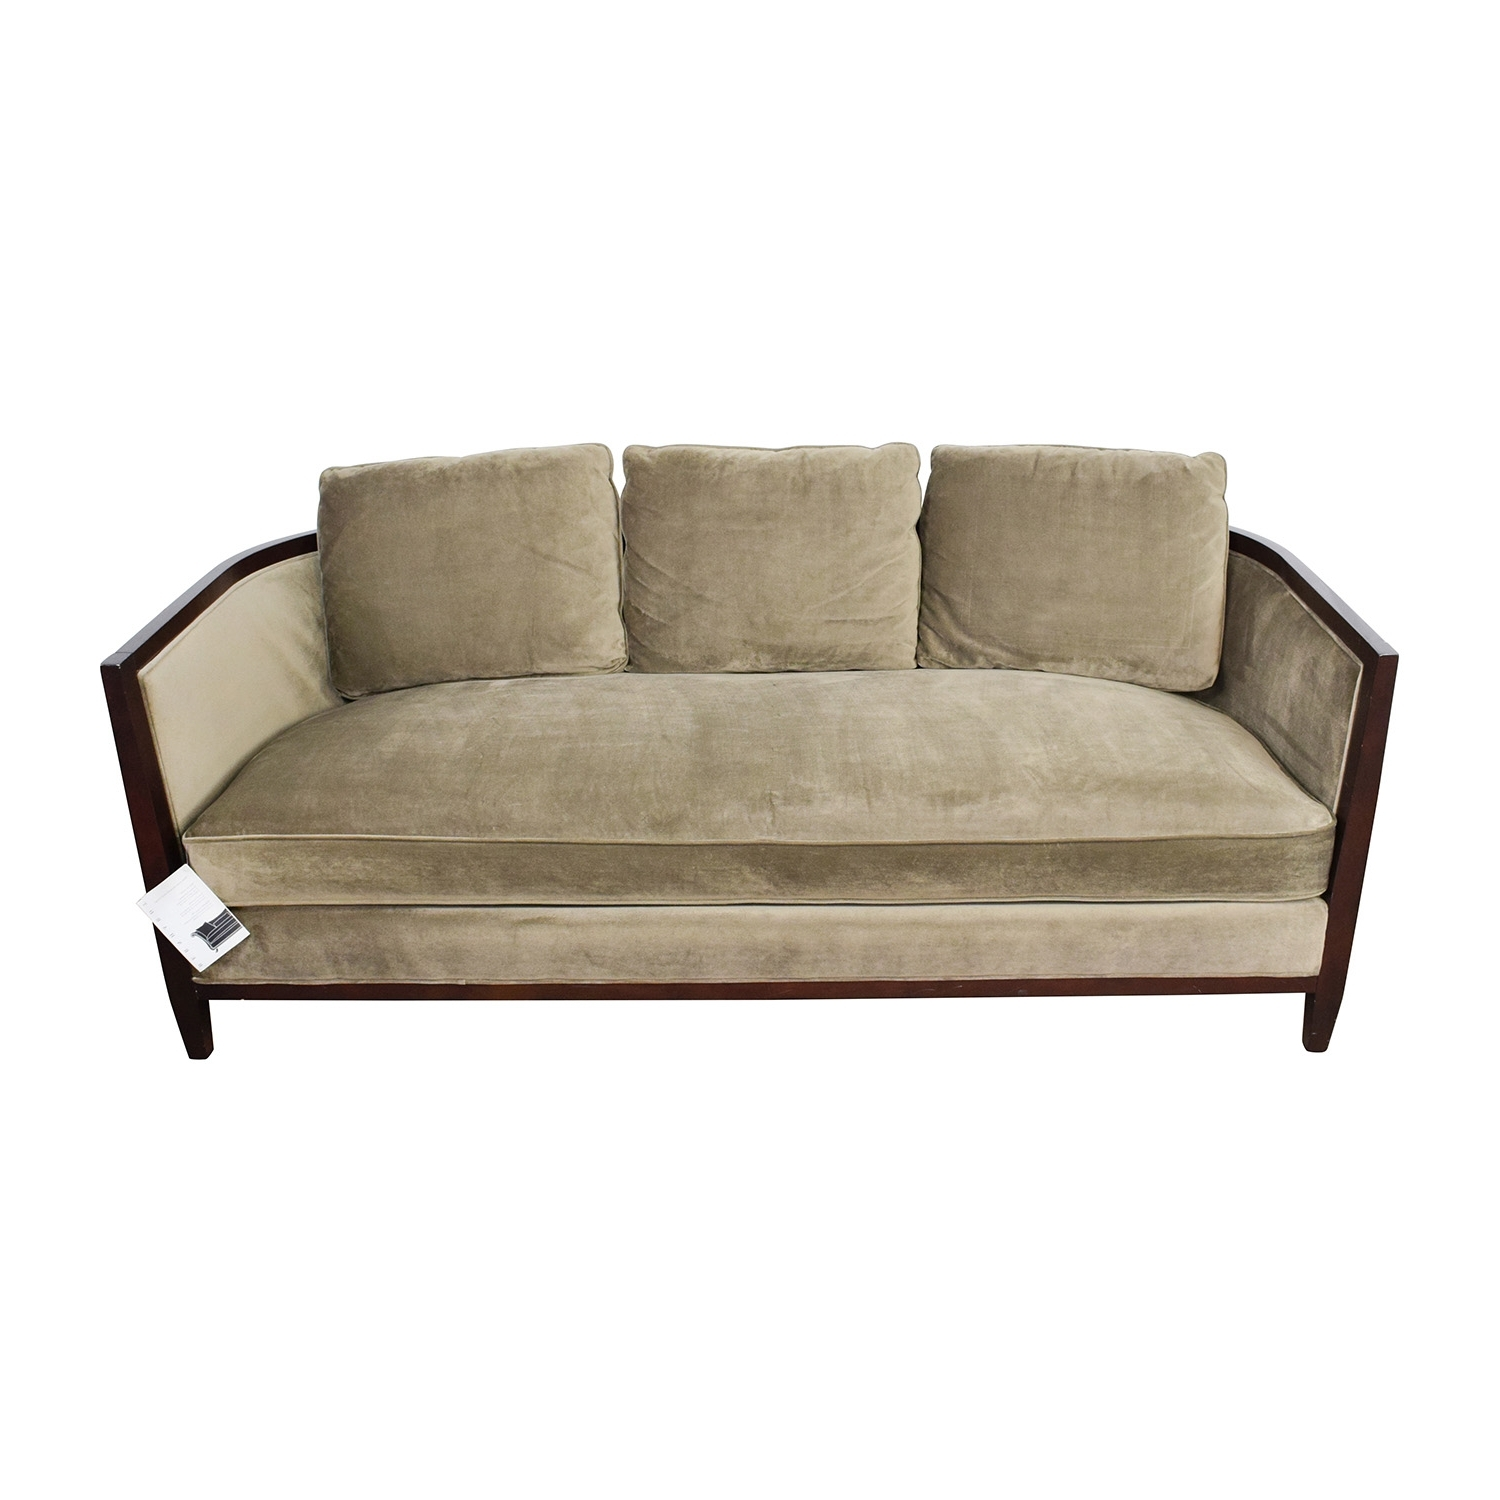 [%85% Off – Bernhardt Bernhardt Tan Single Cushion Sofa / Sofas Inside Famous Single Sofas|Single Sofas Throughout Well Known 85% Off – Bernhardt Bernhardt Tan Single Cushion Sofa / Sofas|Popular Single Sofas For 85% Off – Bernhardt Bernhardt Tan Single Cushion Sofa / Sofas|2017 85% Off – Bernhardt Bernhardt Tan Single Cushion Sofa / Sofas Pertaining To Single Sofas%] (View 10 of 15)